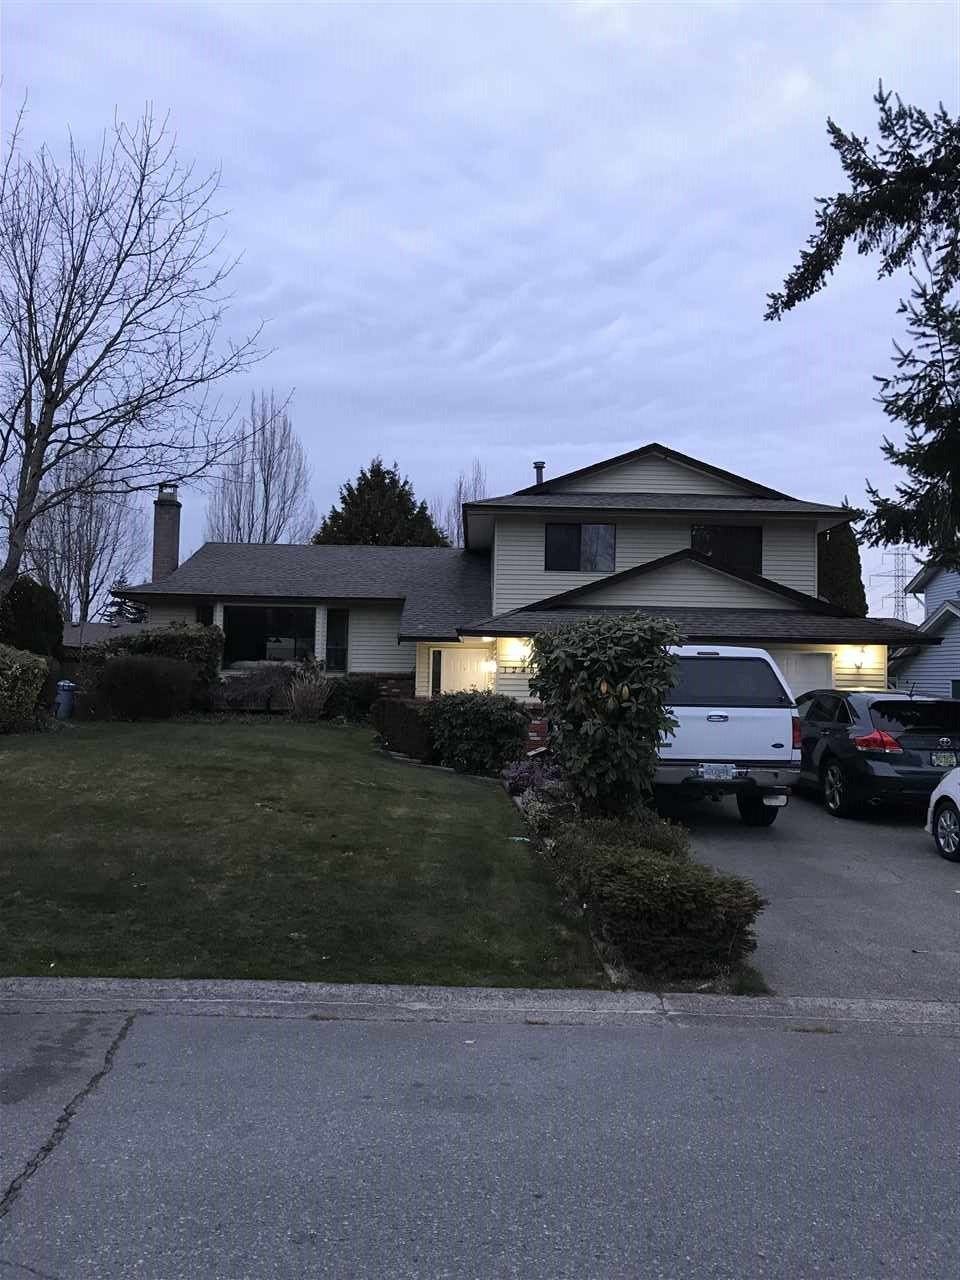 """Main Photo: 12489 78A Avenue in Surrey: West Newton House for sale in """"WEST NEWTON"""" : MLS®# R2446996"""